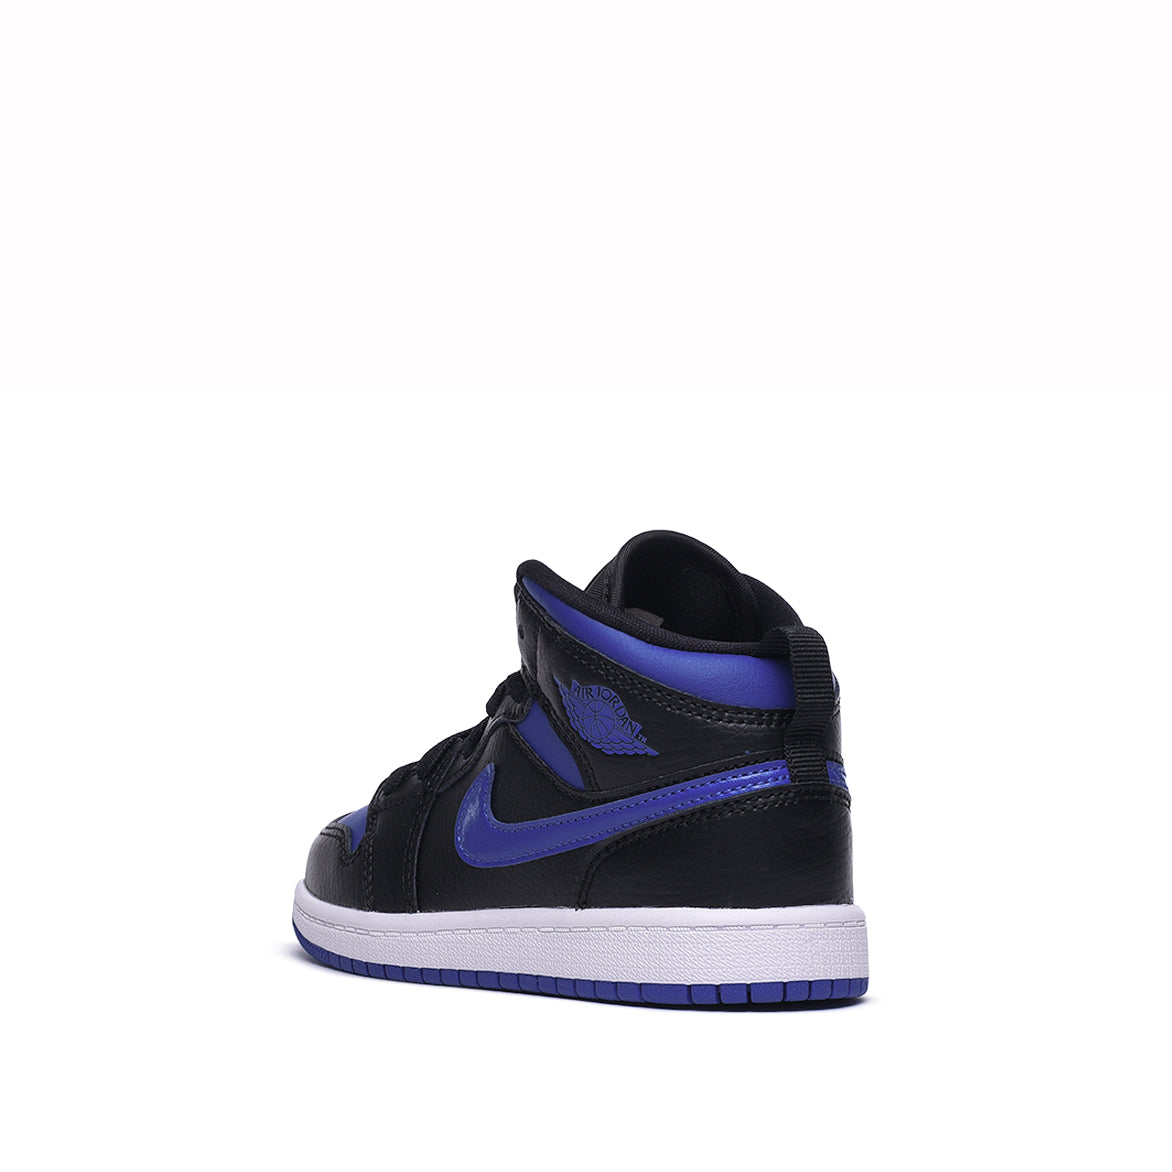 AIR JORDAN 1 MID (PS) - BLACK / HYPER ROYAL / WHITE